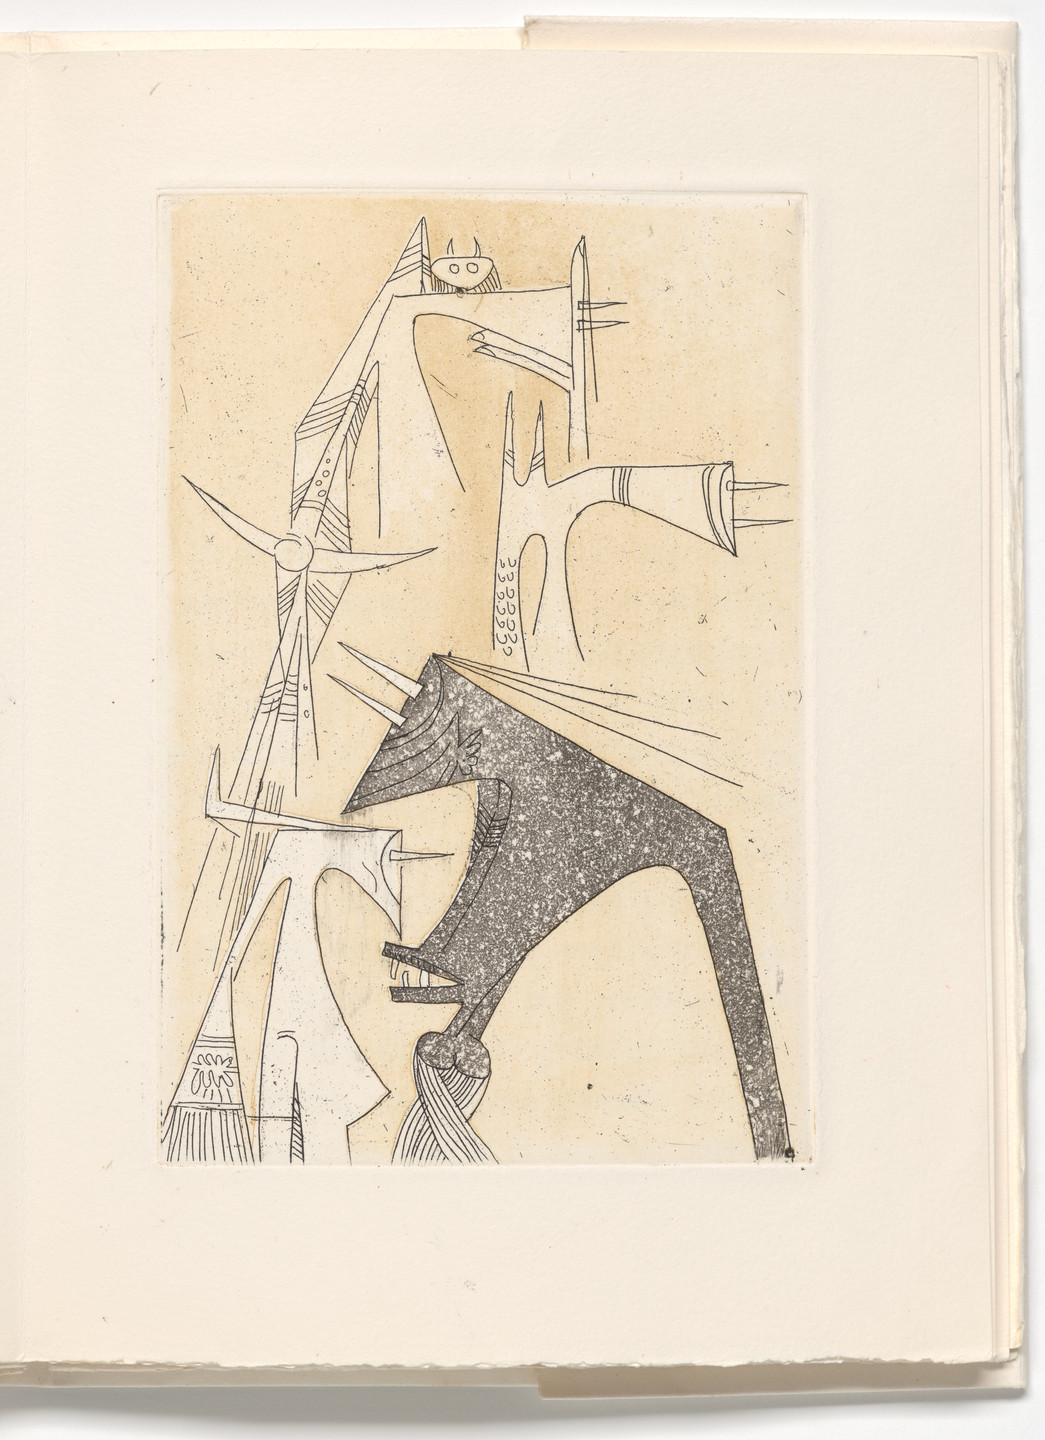 Wifredo Lam. Plate (page 33) from Le Rempart de Brindilles (The Rampart of Twigs). 1953